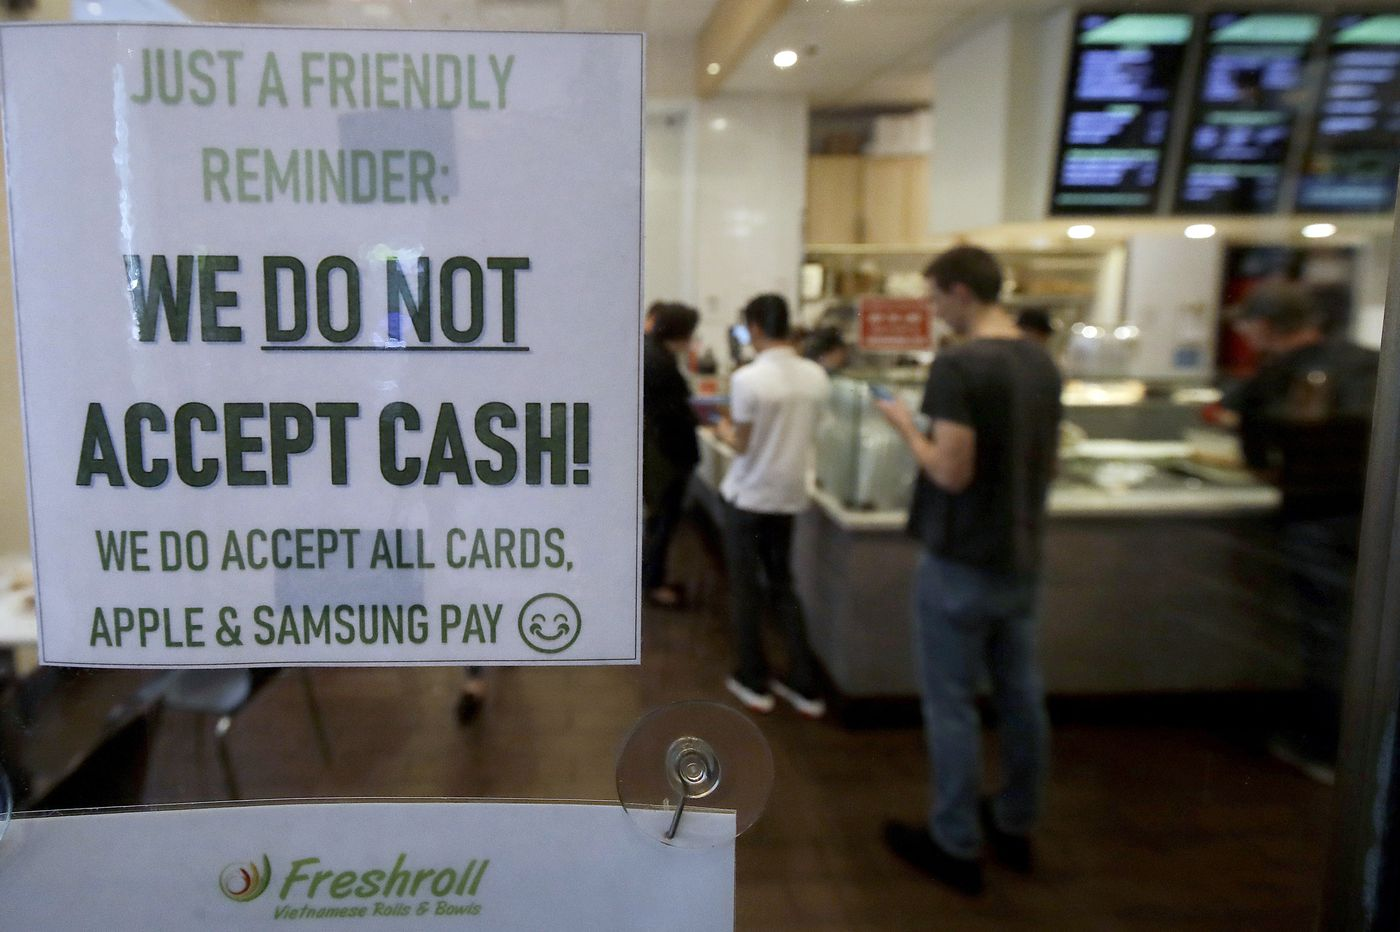 Cash is still king: San Francisco follows Philly, N.J. in banning credit-only stores